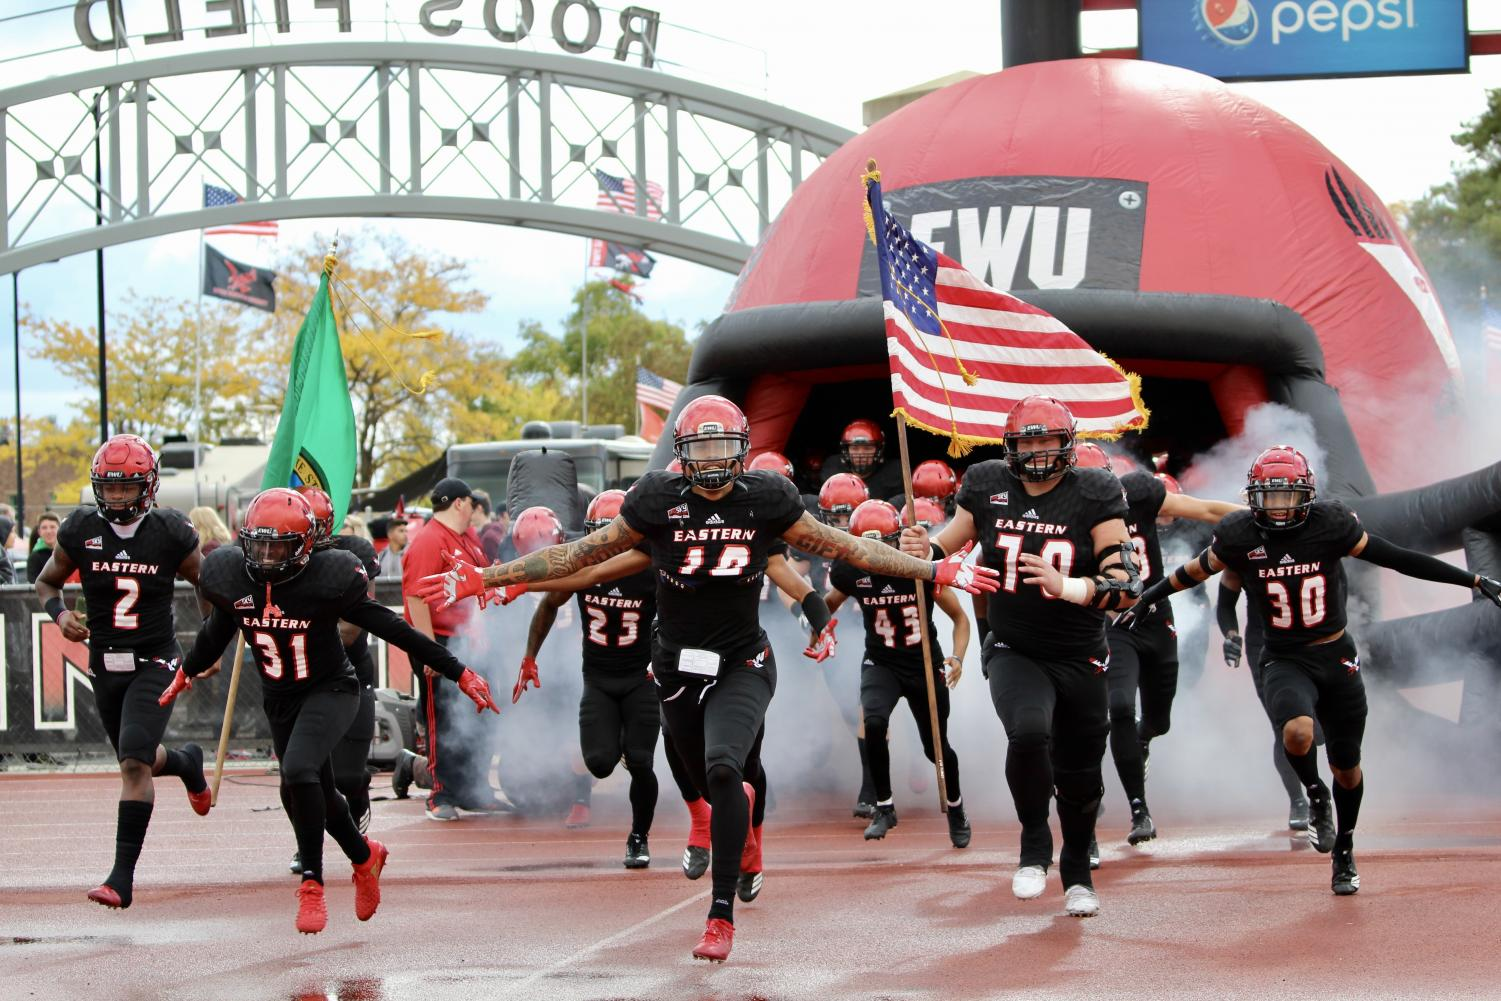 The EWU football team enters Roos Field on Oct. 6, 2018 before a victory over Southern Utah.